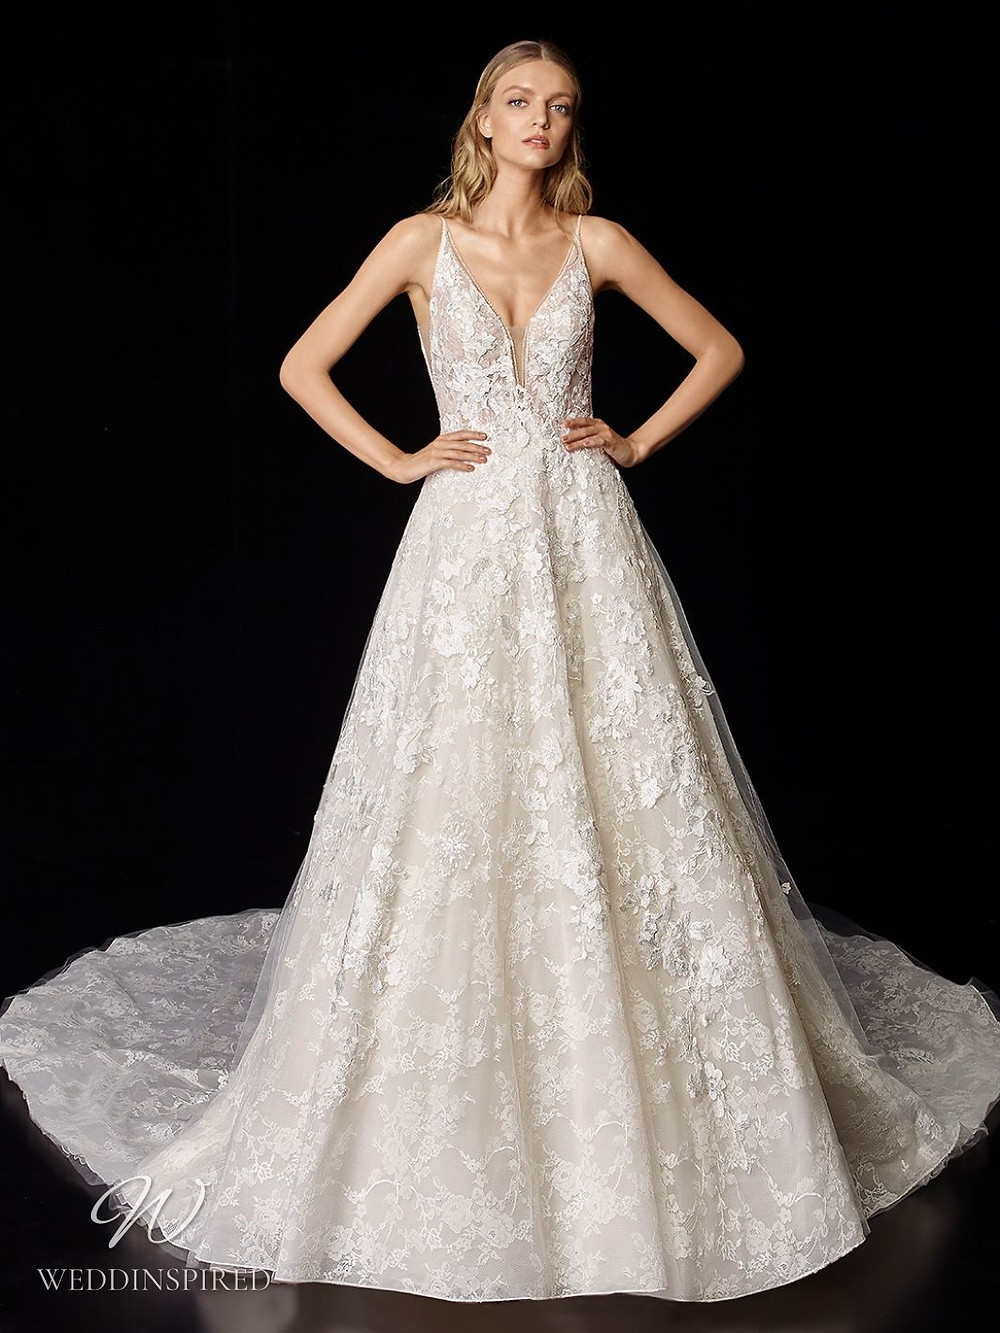 An Enzoani lace A-line wedding dress with a v neckline and a train